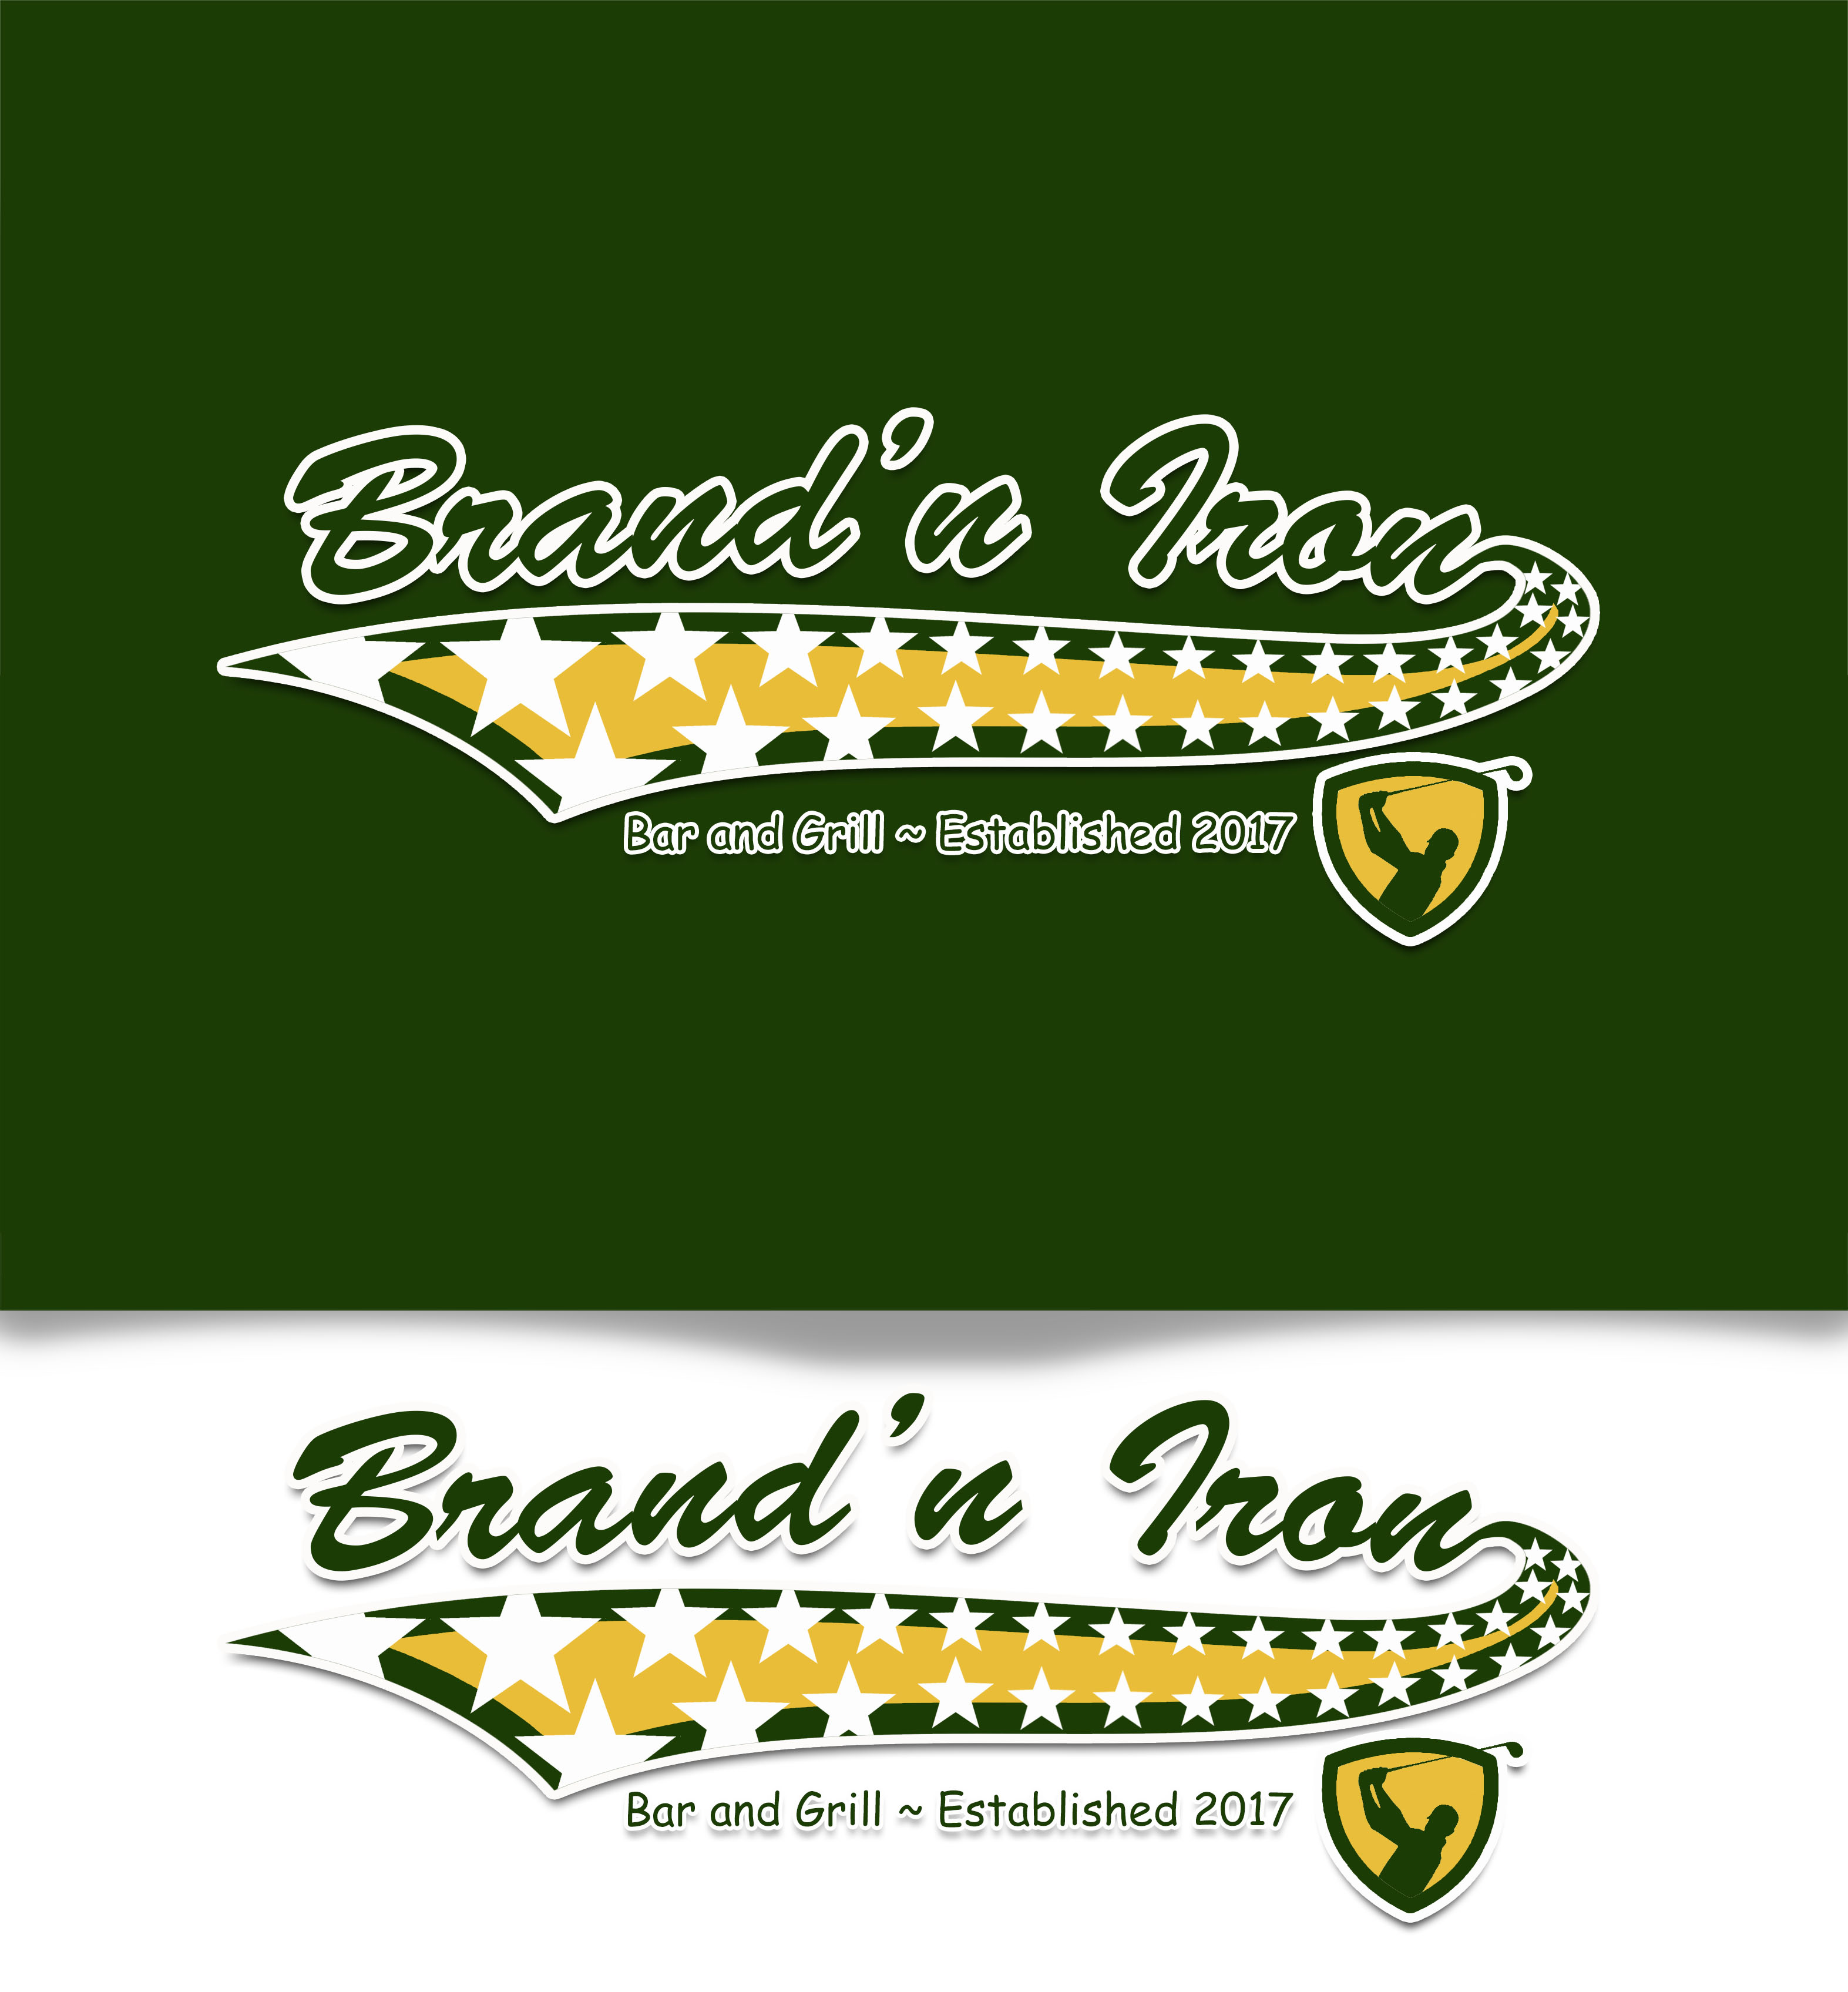 Logo Design by JSDESIGNGROUP - Entry No. 211 in the Logo Design Contest Captivating Logo Design for Brand'n Iron Bar & Grill.